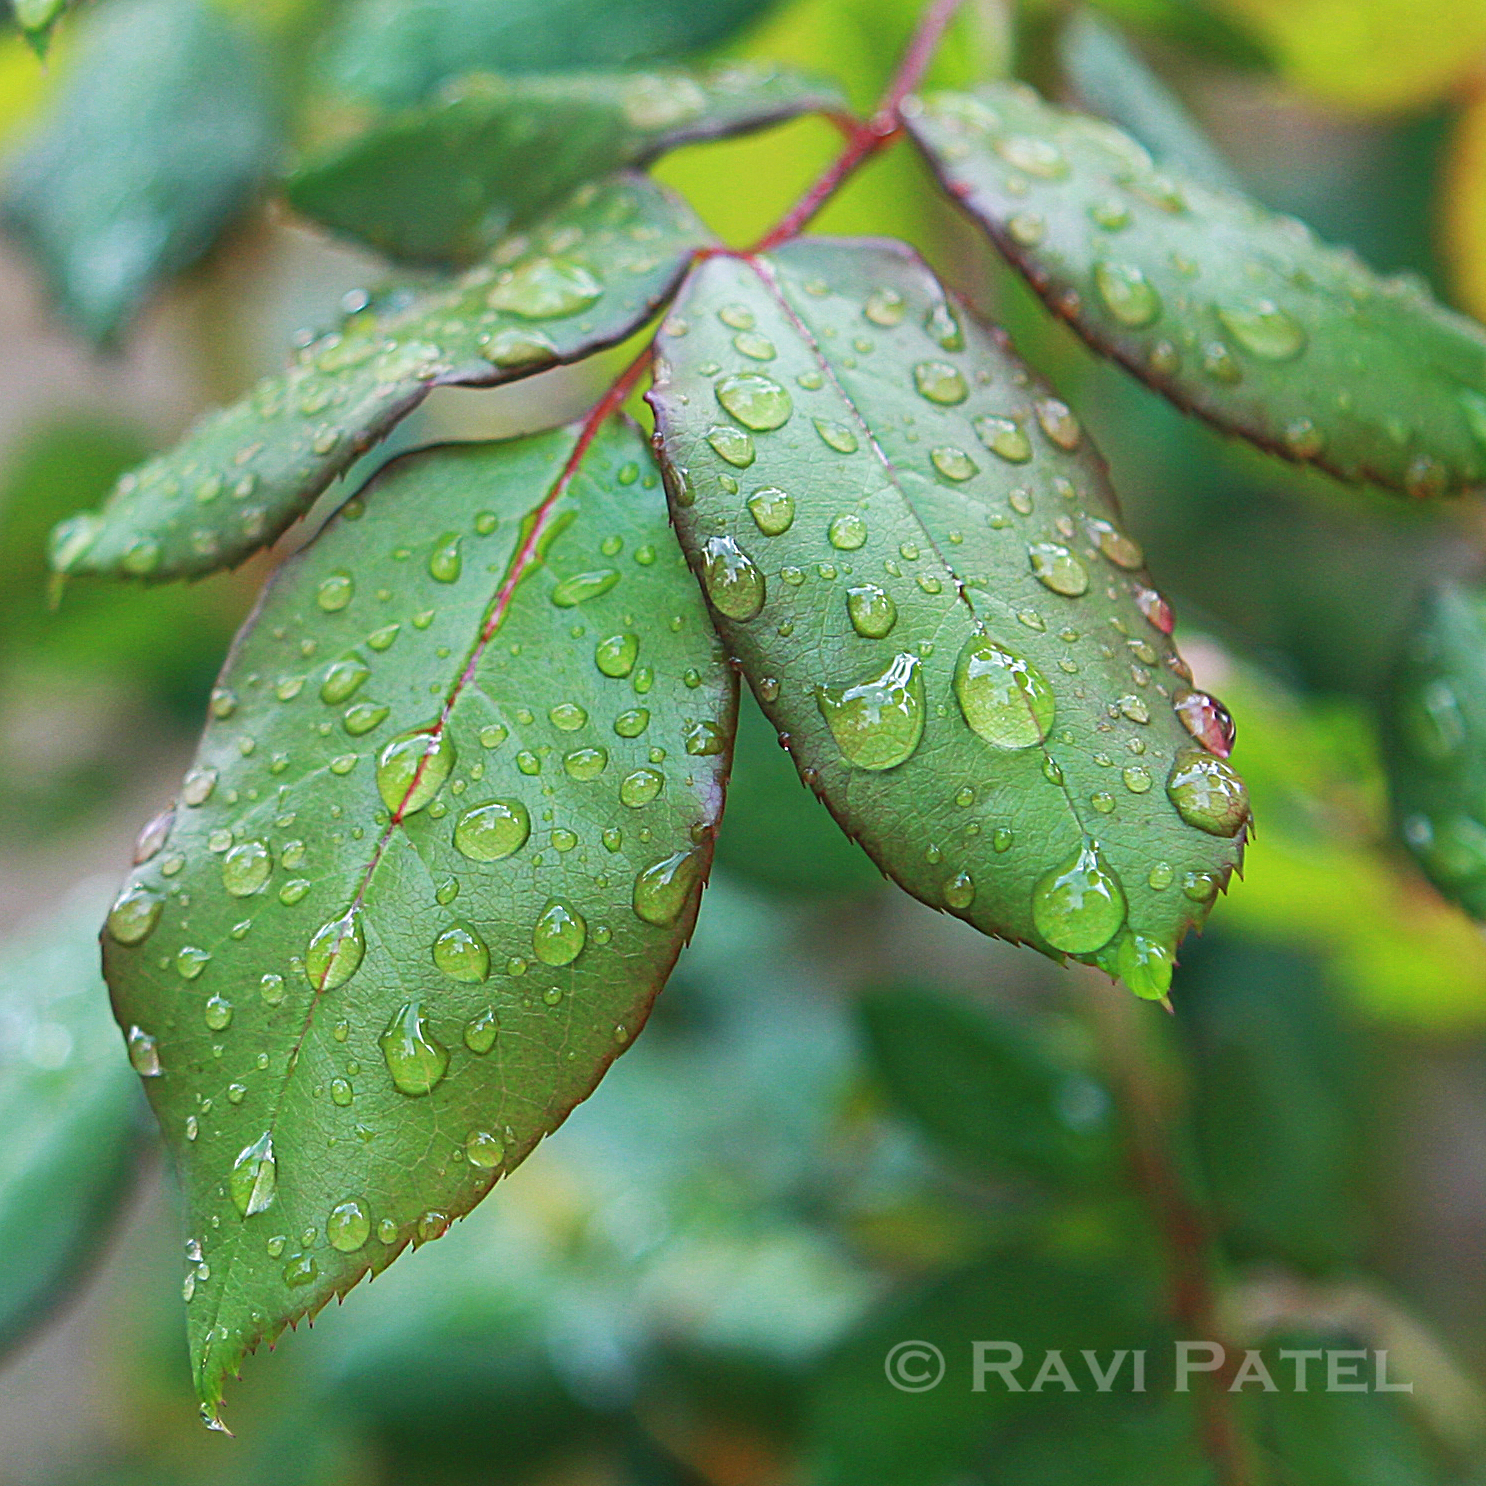 Raindrops on Leaves | Photos by Ravi